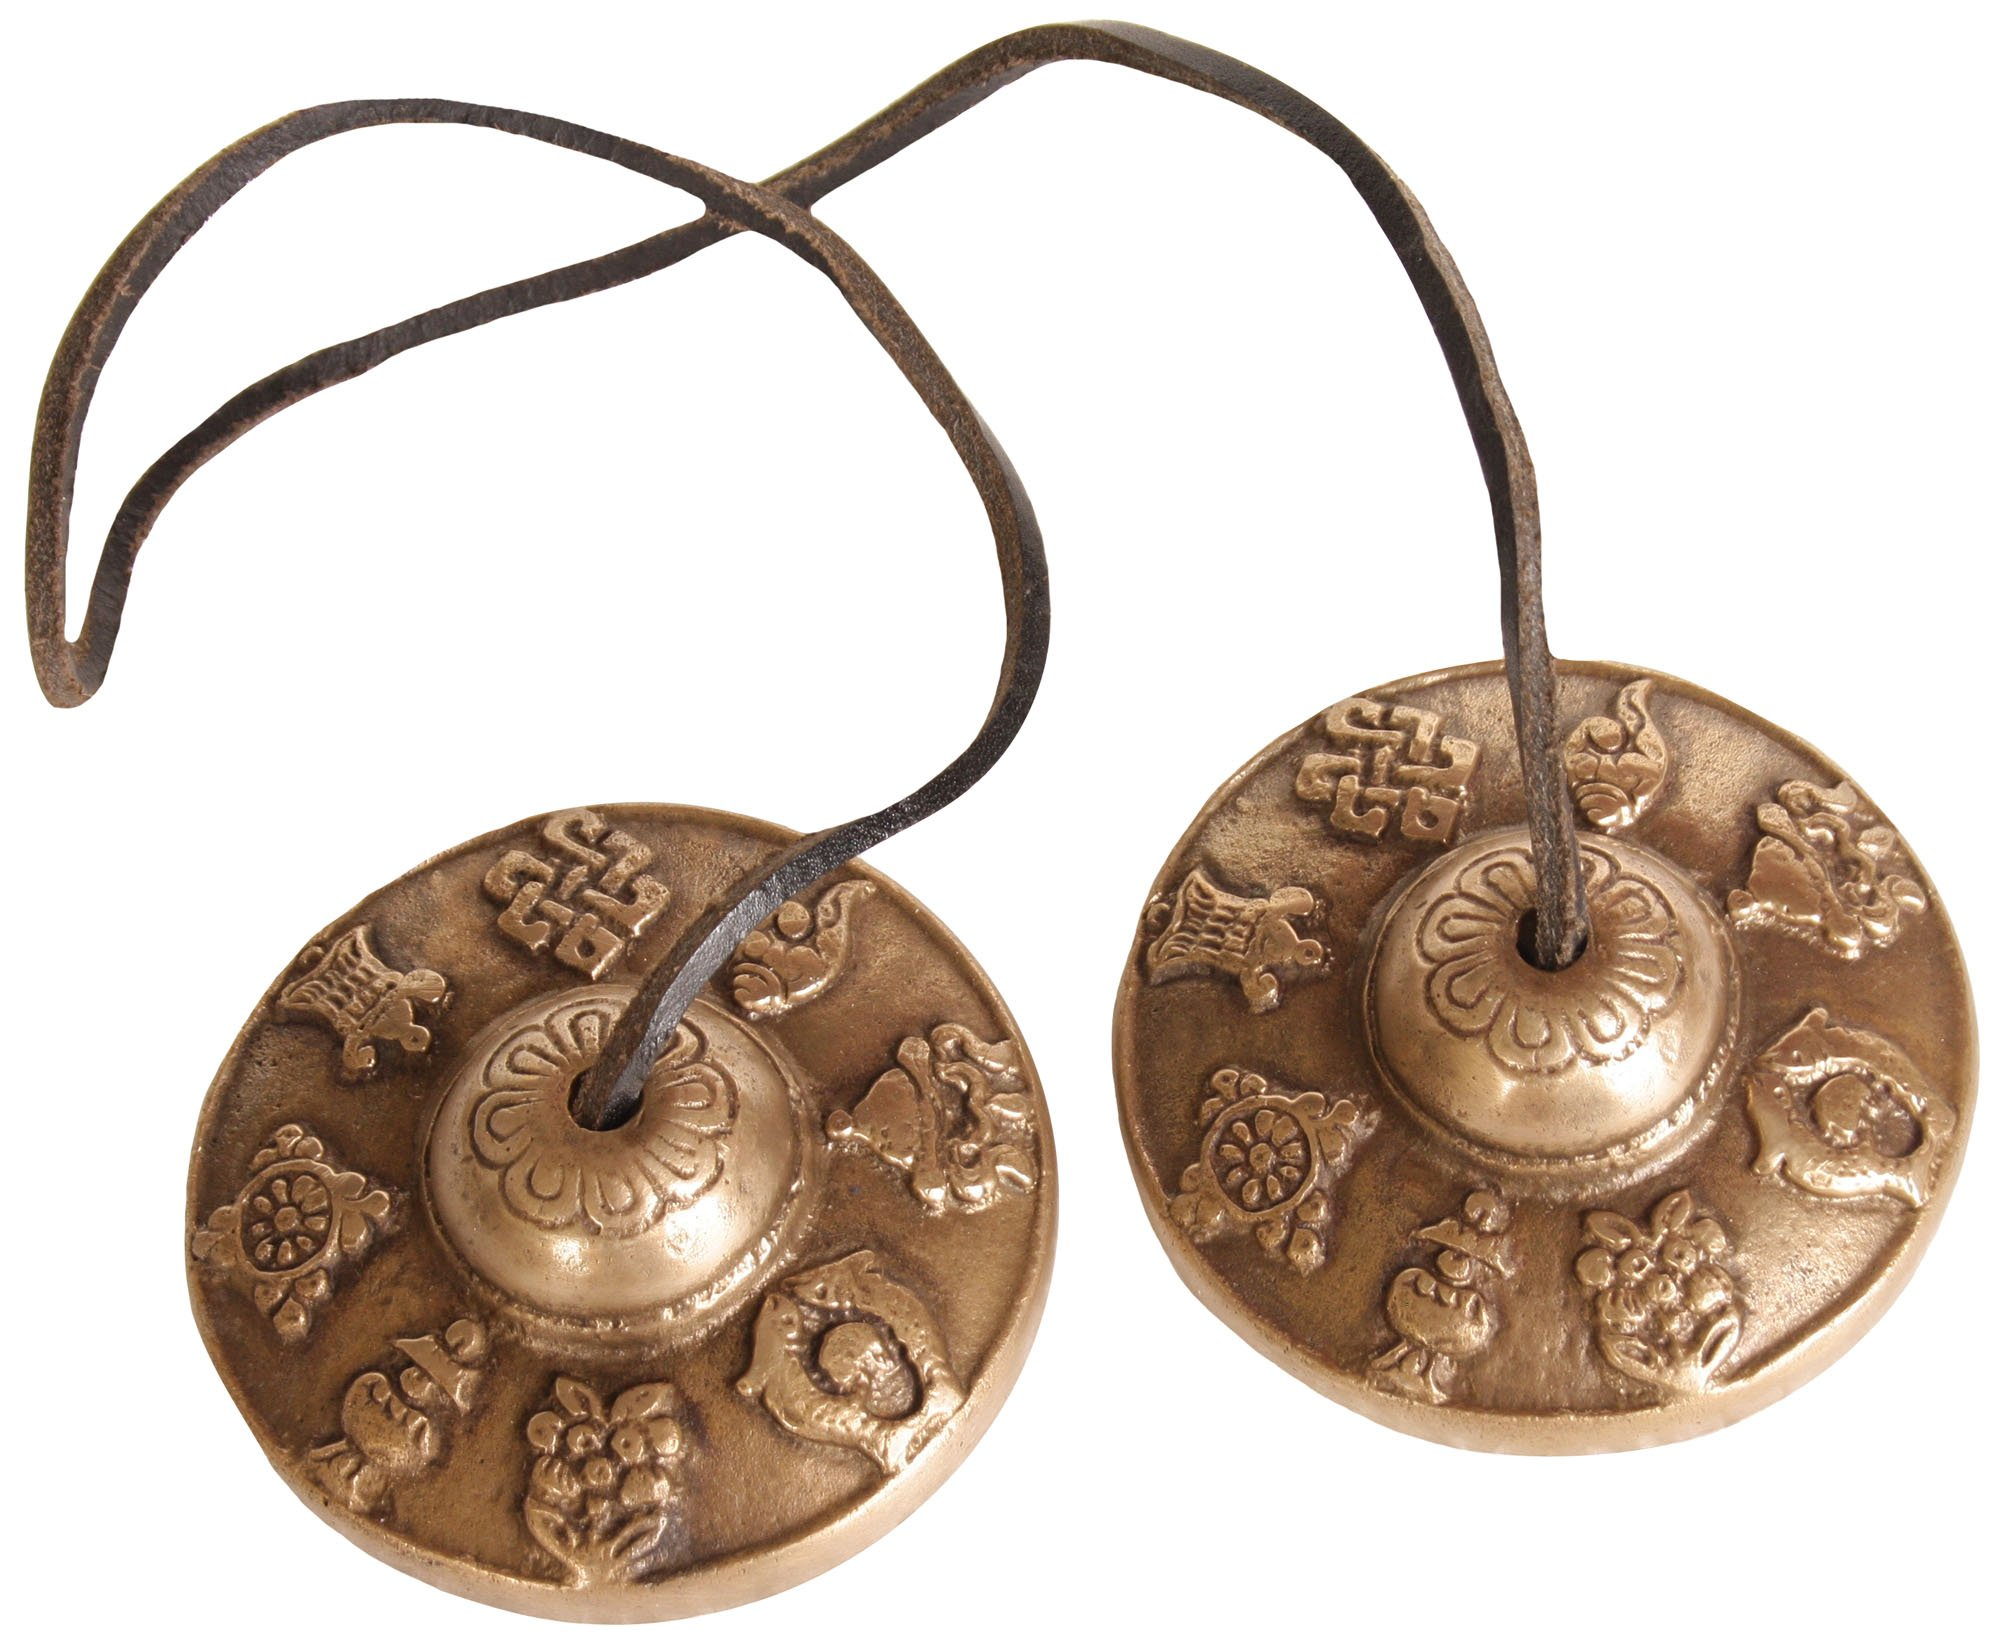 Ashtamangala Ritual Cymbals with Syllable Mantra - Brass & Leather by Exotic India